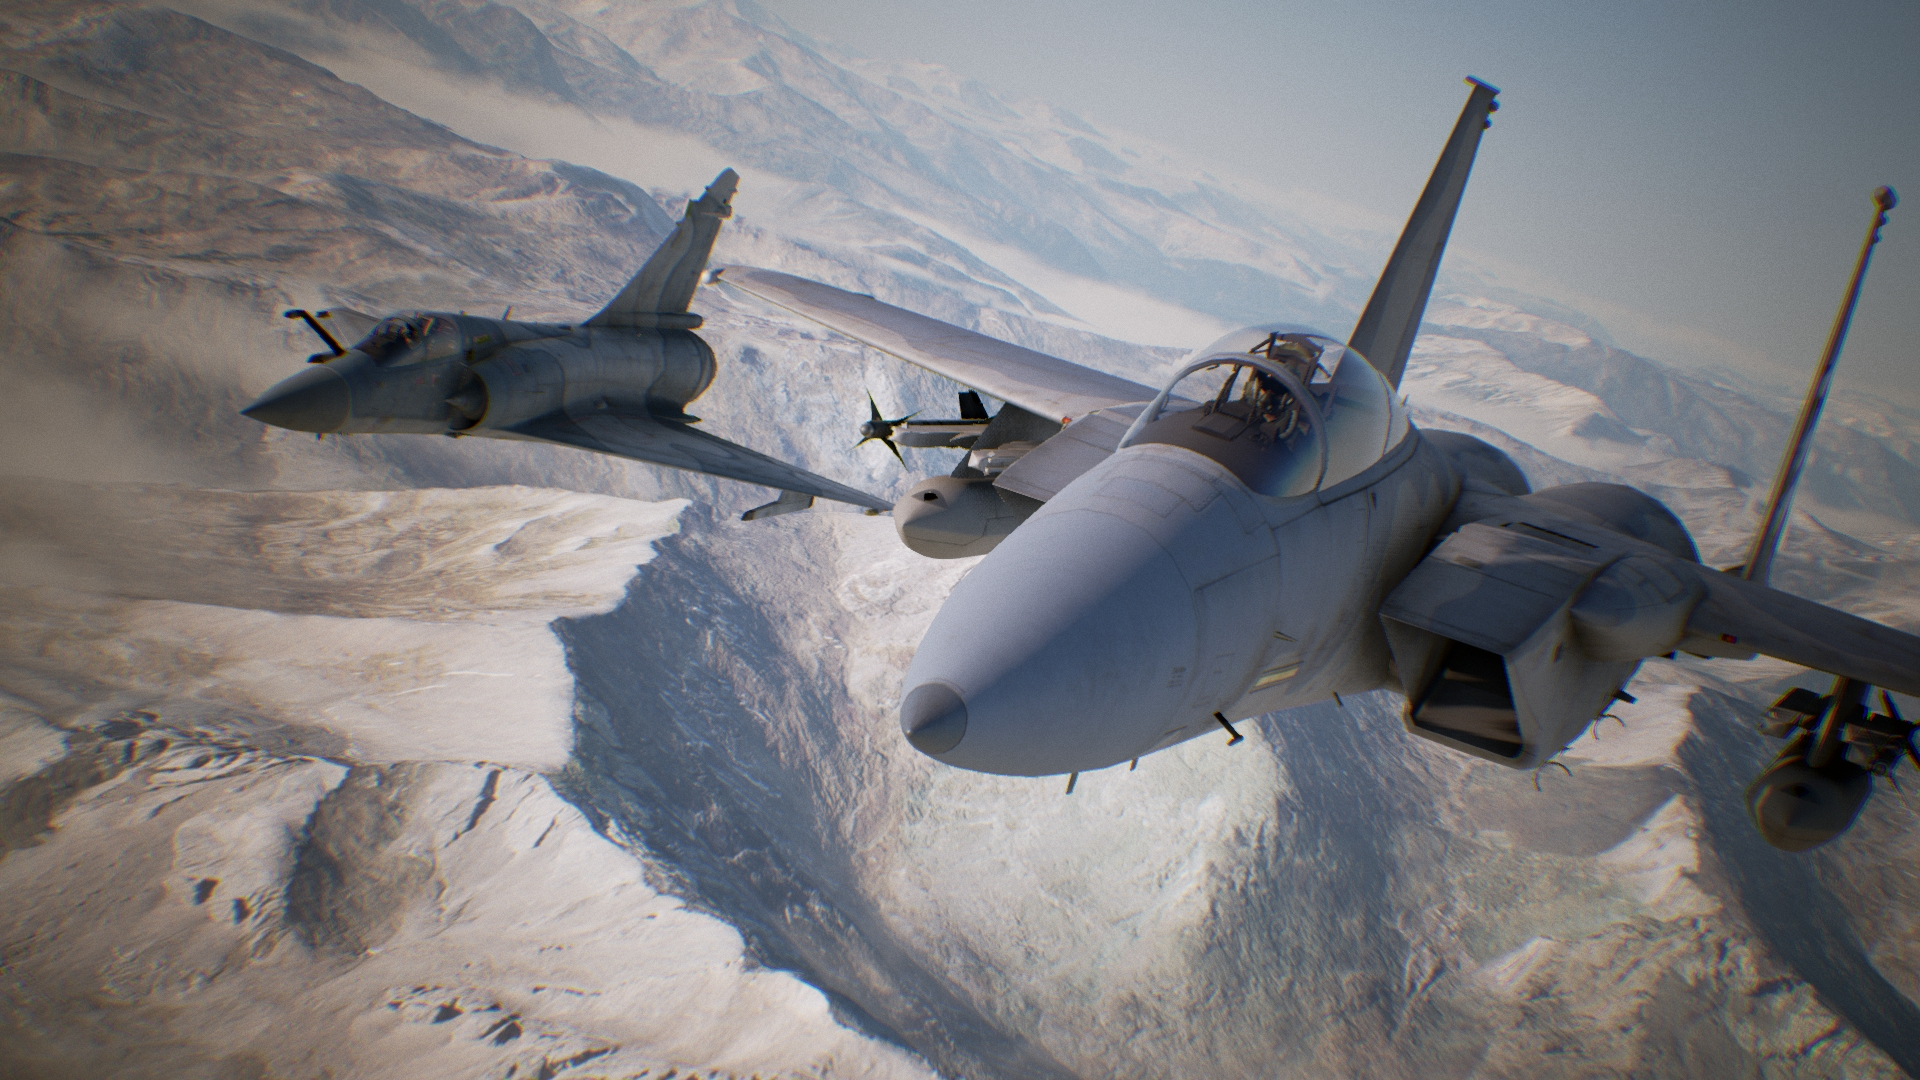 Ace Combat 7: Skies Unknown - Ace Combat 7: Skies Unknown